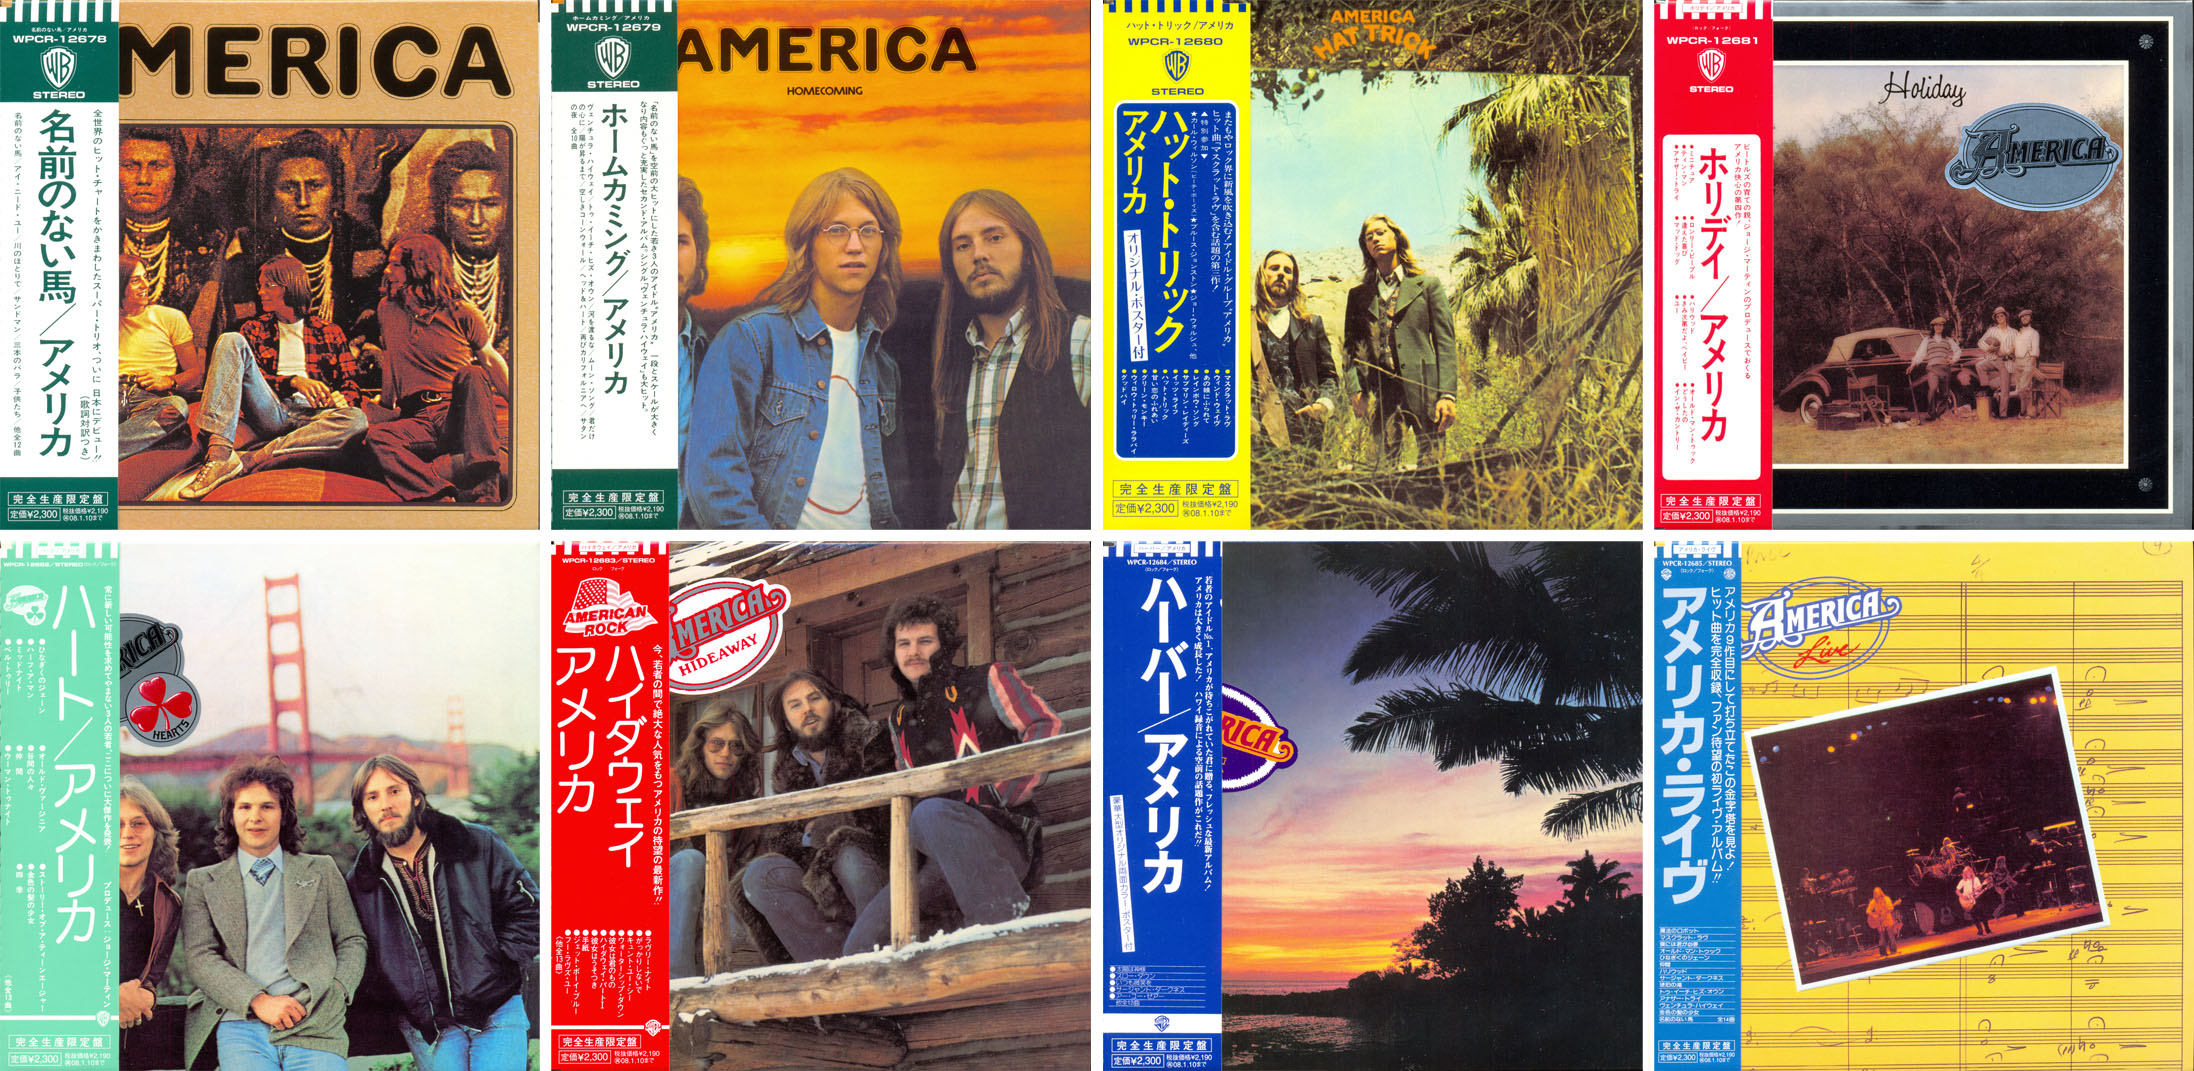 America - Albums Collection 1971-1977 (8CD) Japanese